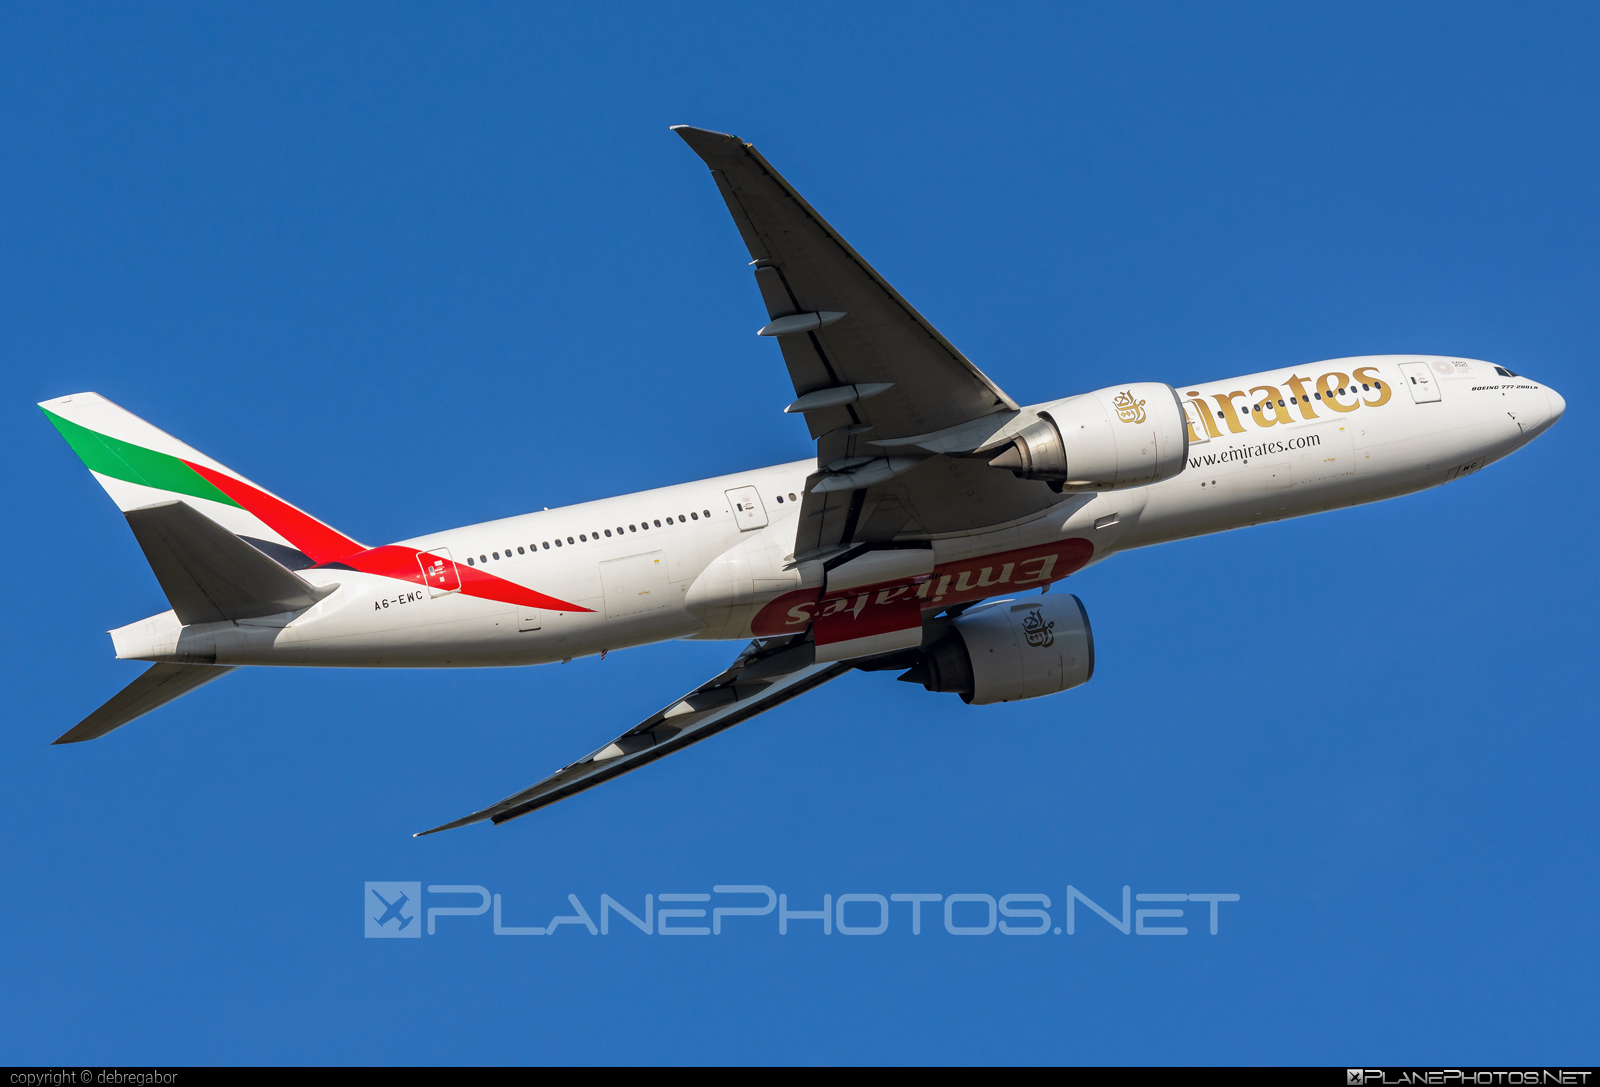 Boeing 777-200LR - A6-EWC operated by Emirates #b777 #b777lr #boeing #boeing777 #emirates #tripleseven